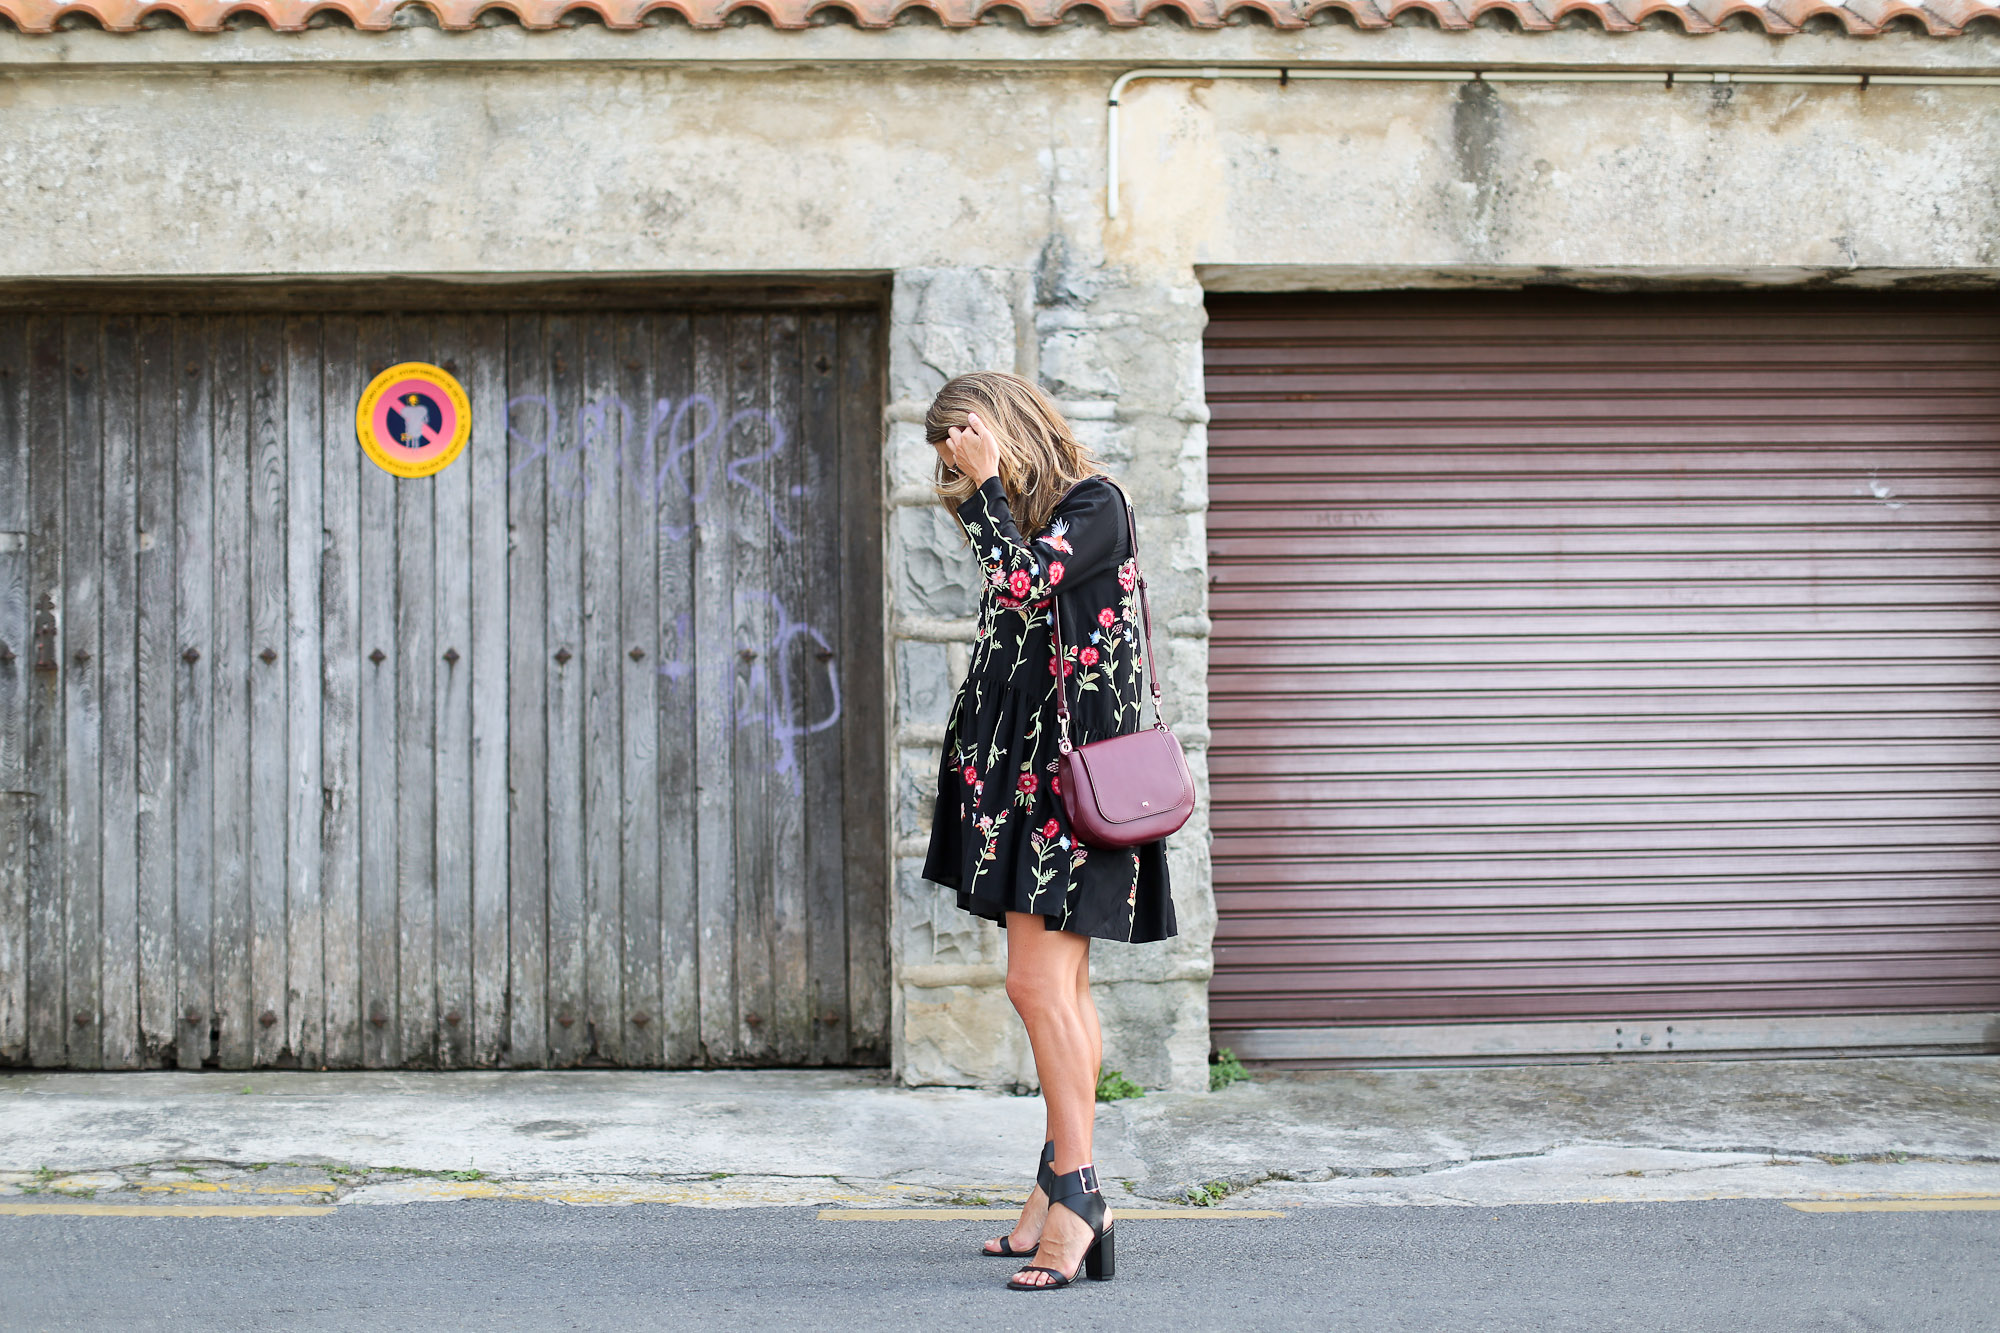 Clochet_streetstyle_zara_embroided_littleblackdress_purificaciongarcia_bandolera_westfalia